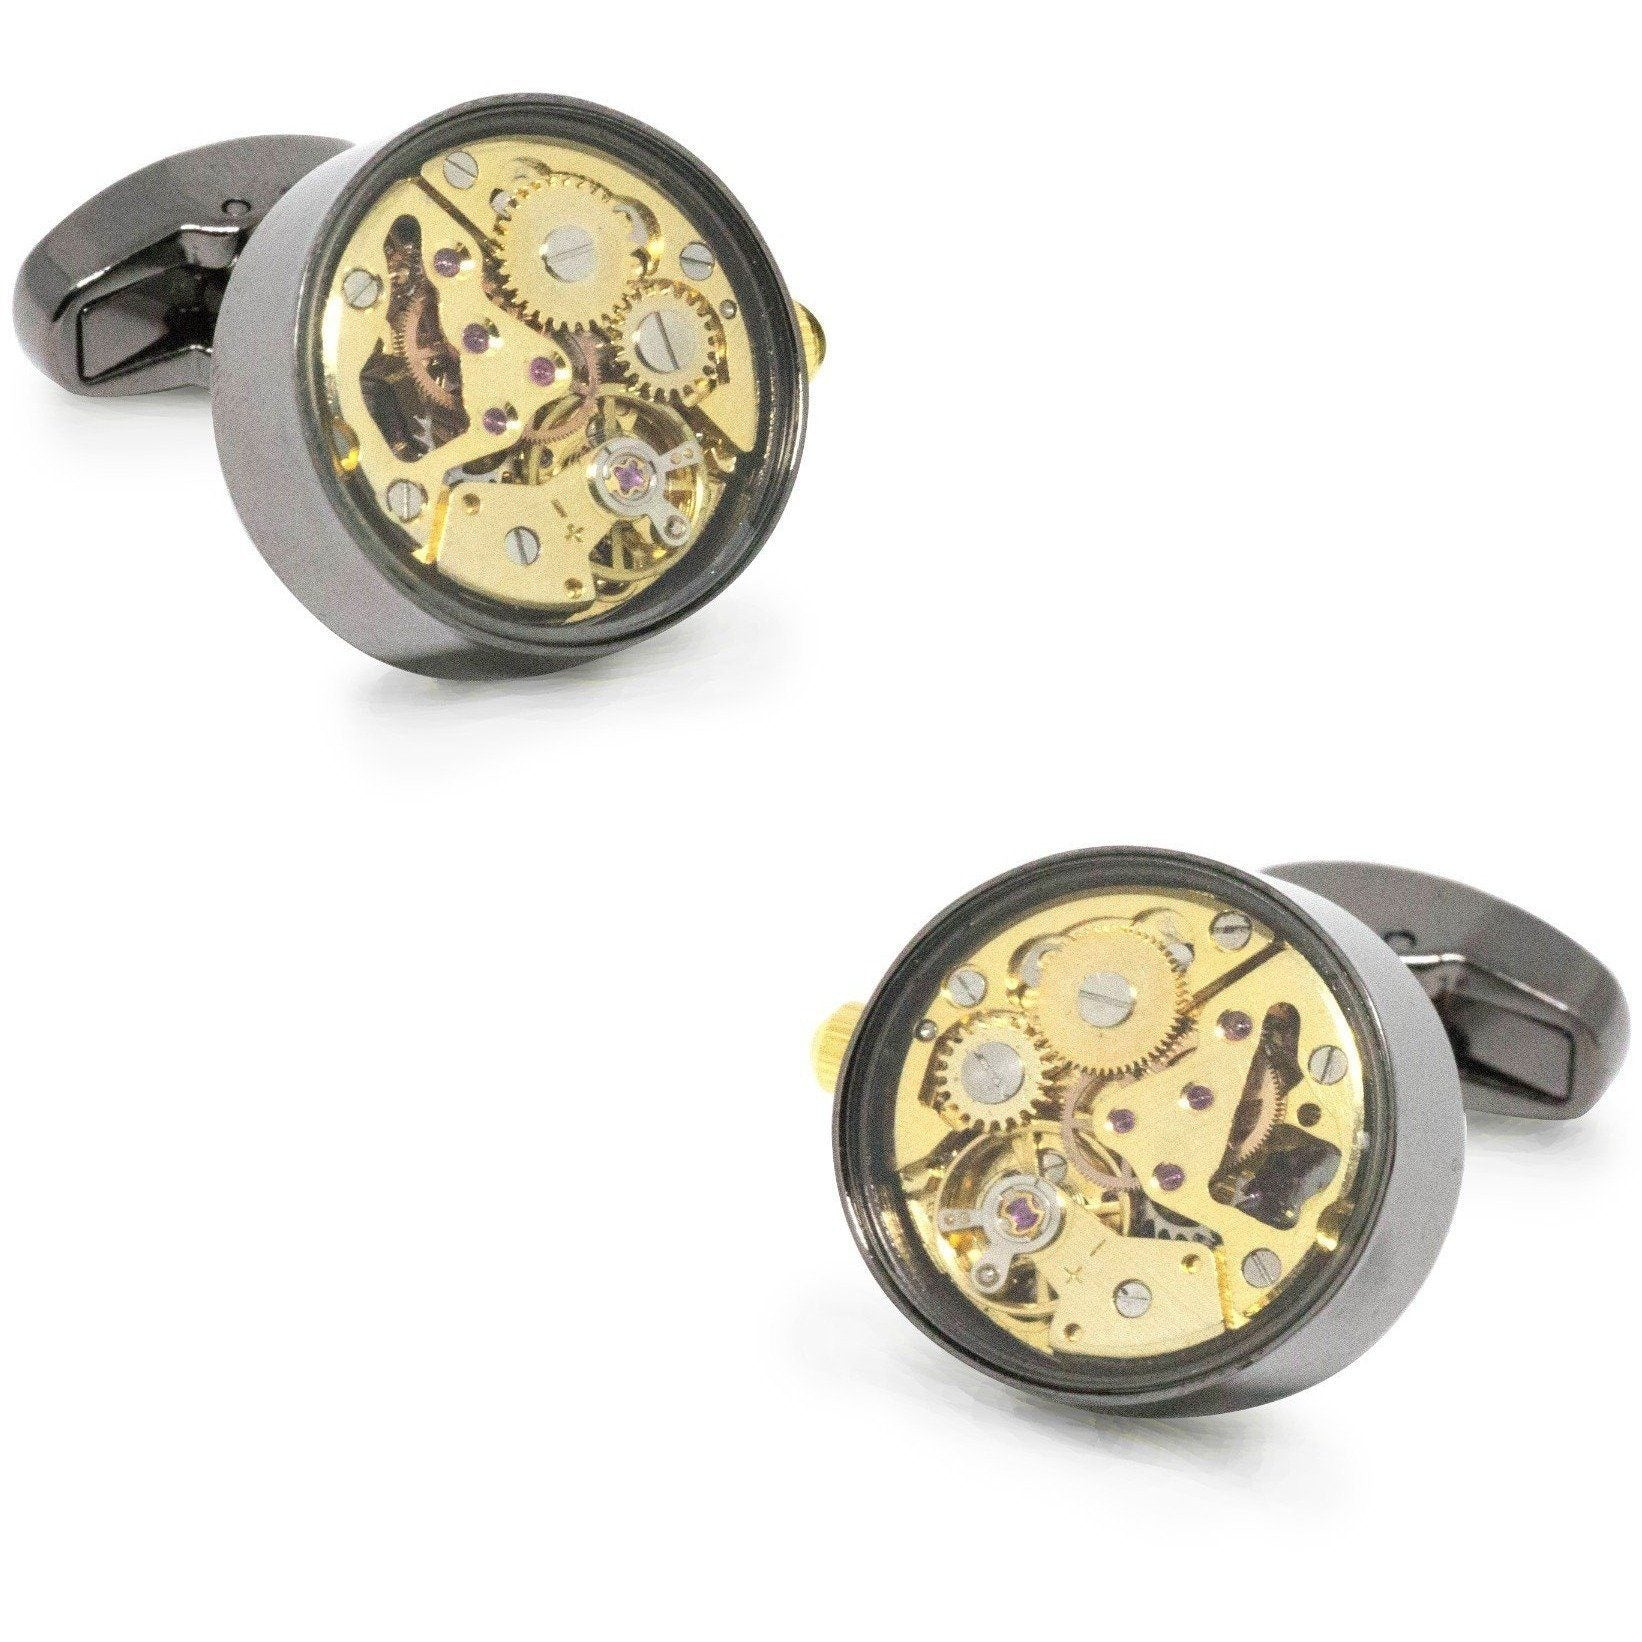 Working Watch Movement Steampunk Cufflinks Gunmetal and Gold, Novelty Cufflinks, Cuffed.com.au, CL5561, $79.00